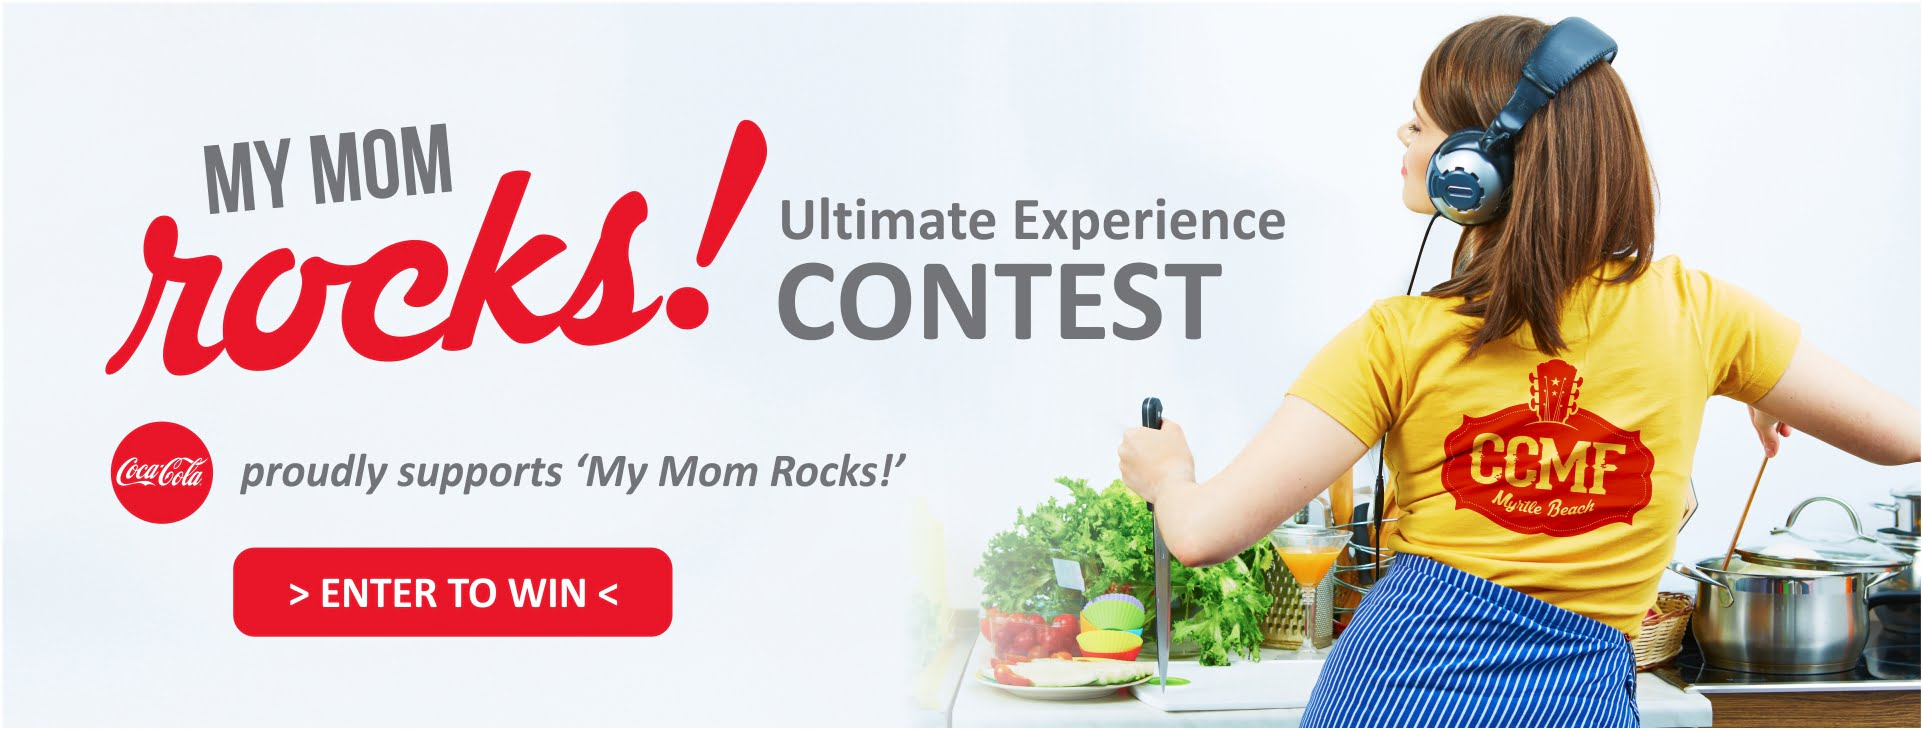 Nominate a deserving momma for 'My Mom Rocks' Ultimate Carolina Country Music experience with Coca-Cola©